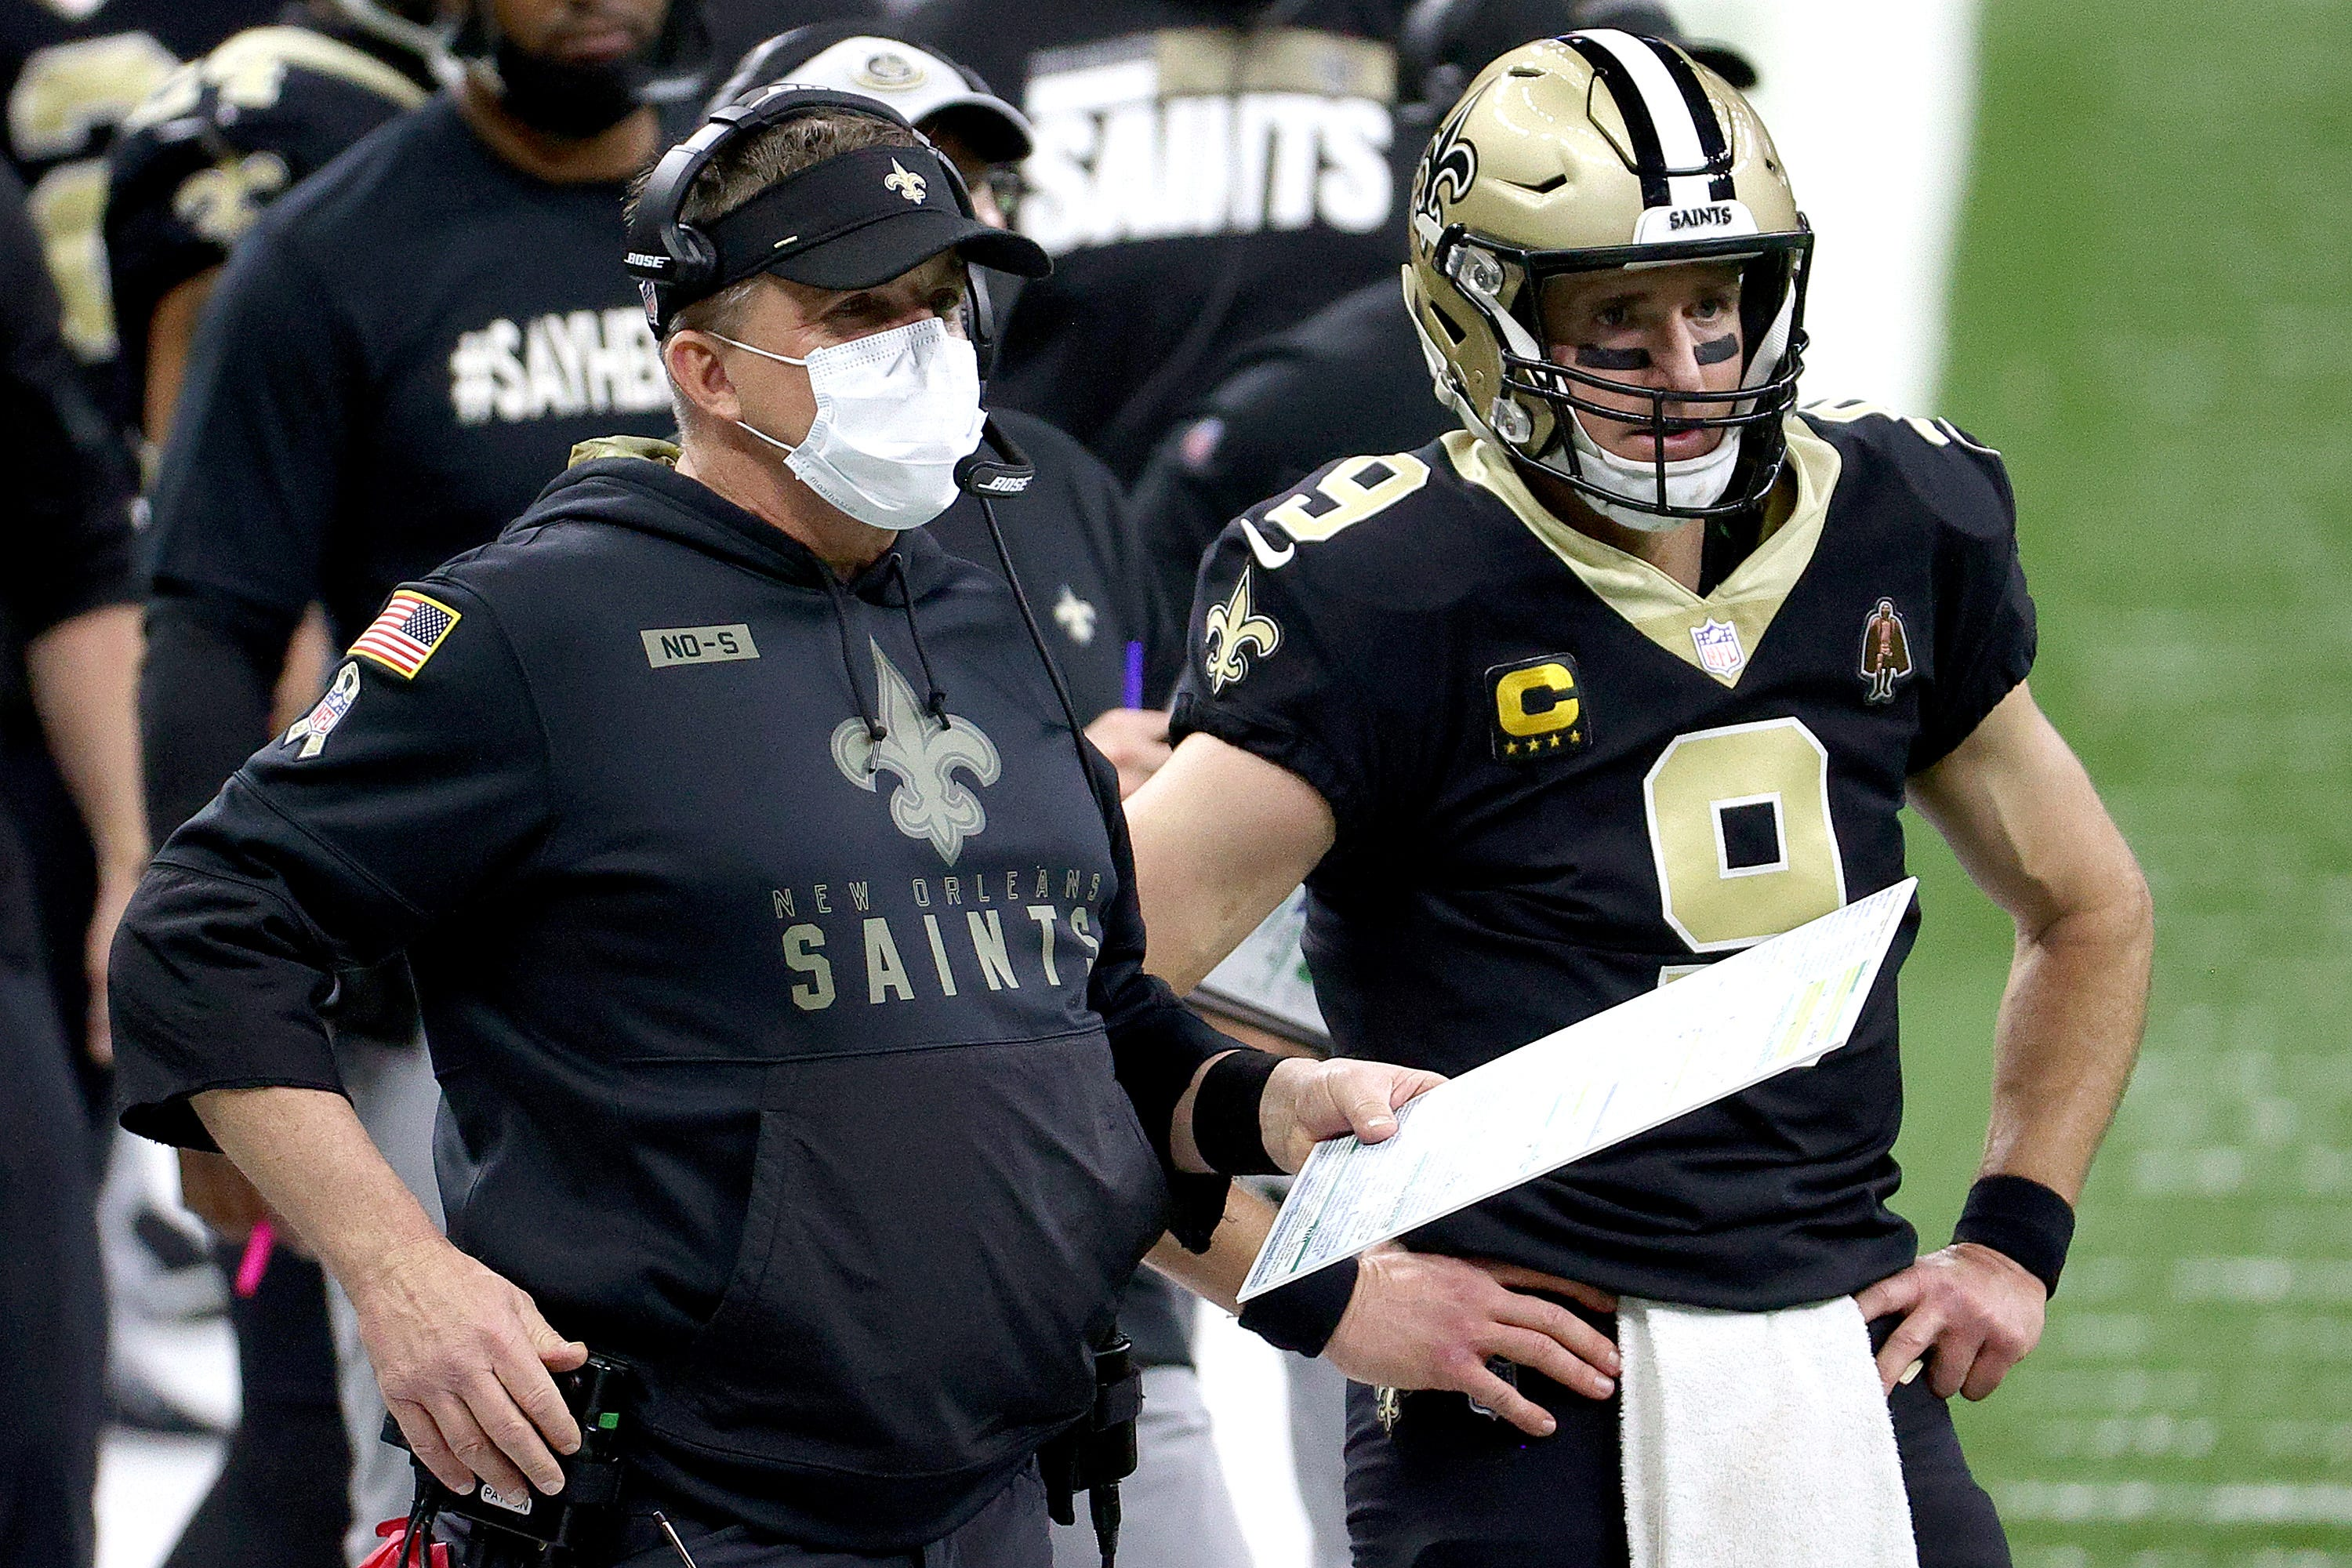 New Orleans Saints coach Sean Payton delivers on slime promise to cap off entertaining Nickelodeon broadcast